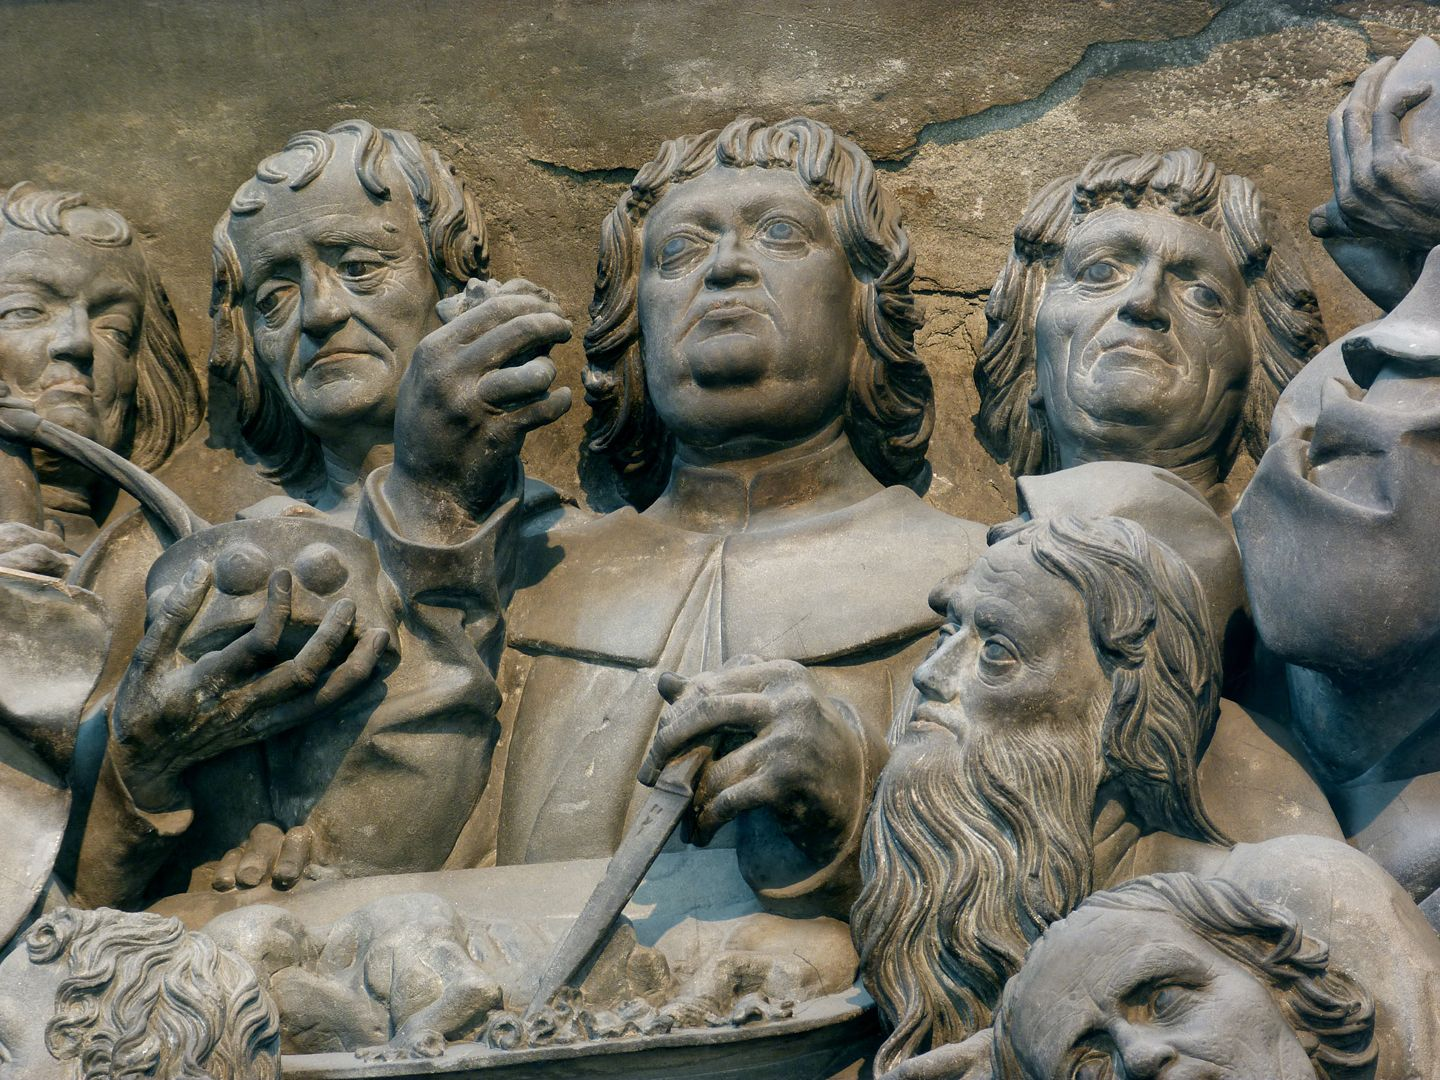 Volckamer Memorial Foundation, relief plates Last Supper, detail: Group of Apostles around the Passover Lamb